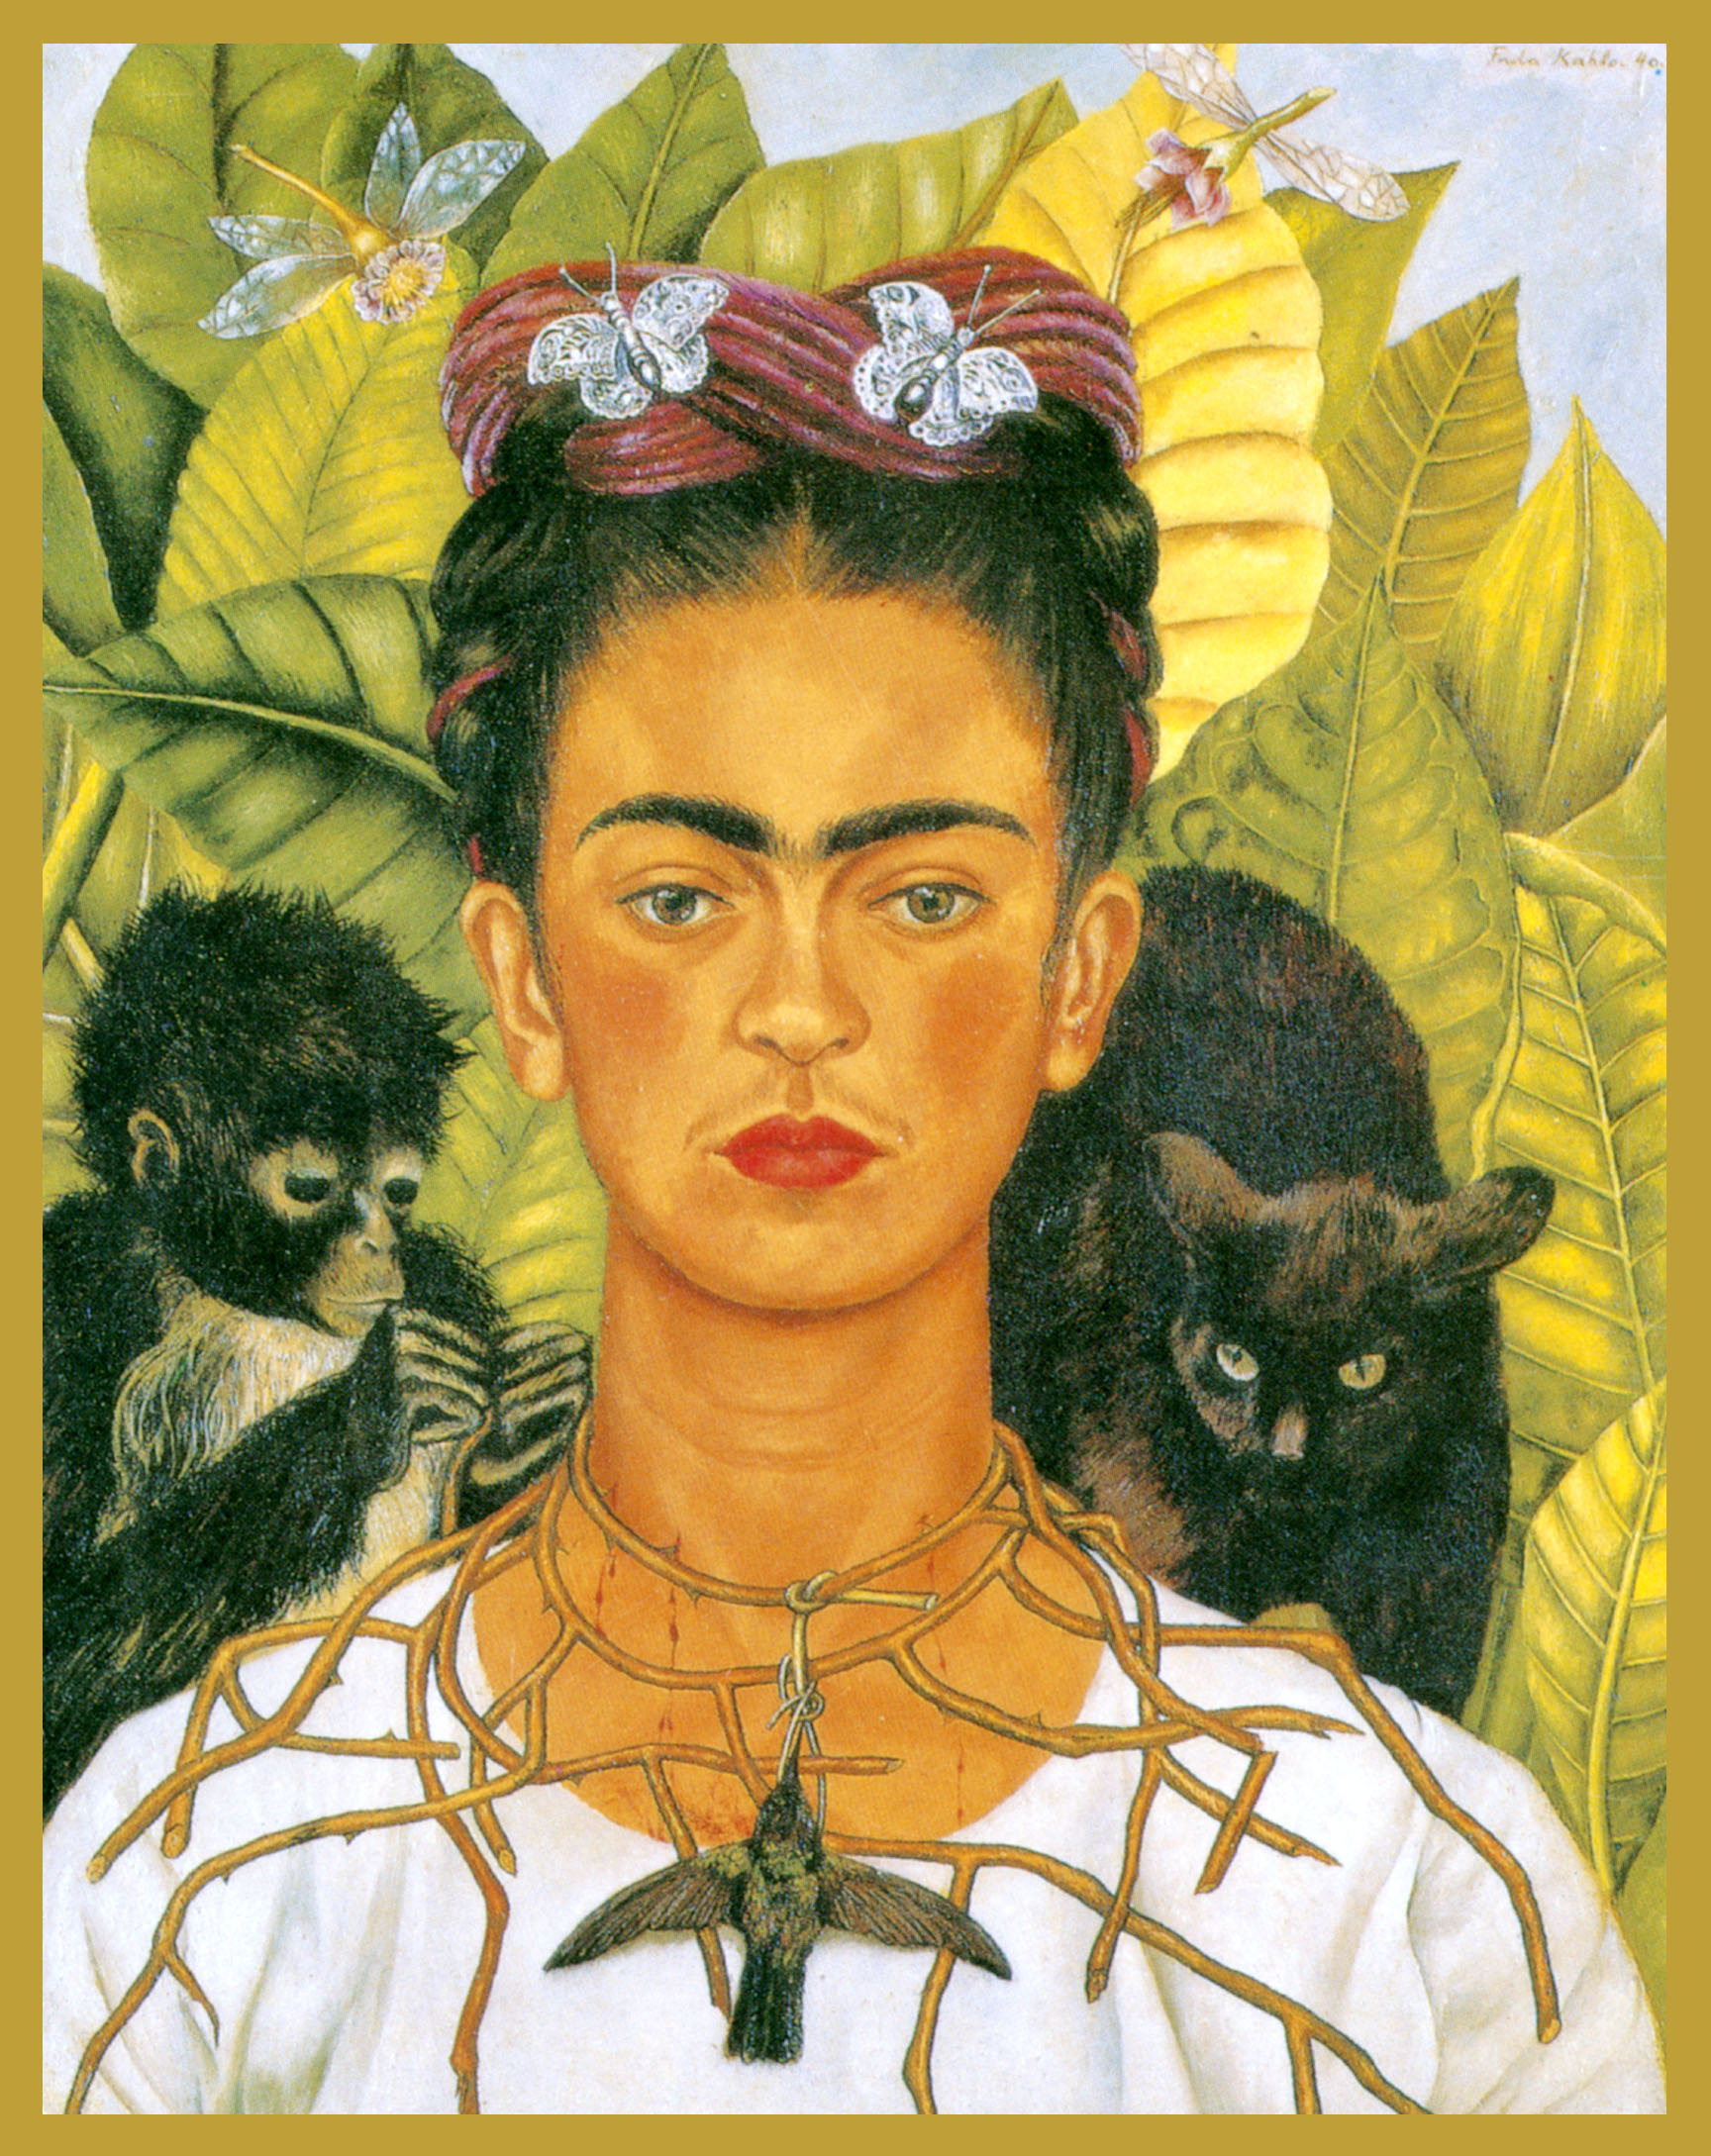 FR-KA - Frida KahloBeloved and influential Mexican painter of the middle twentieth century.